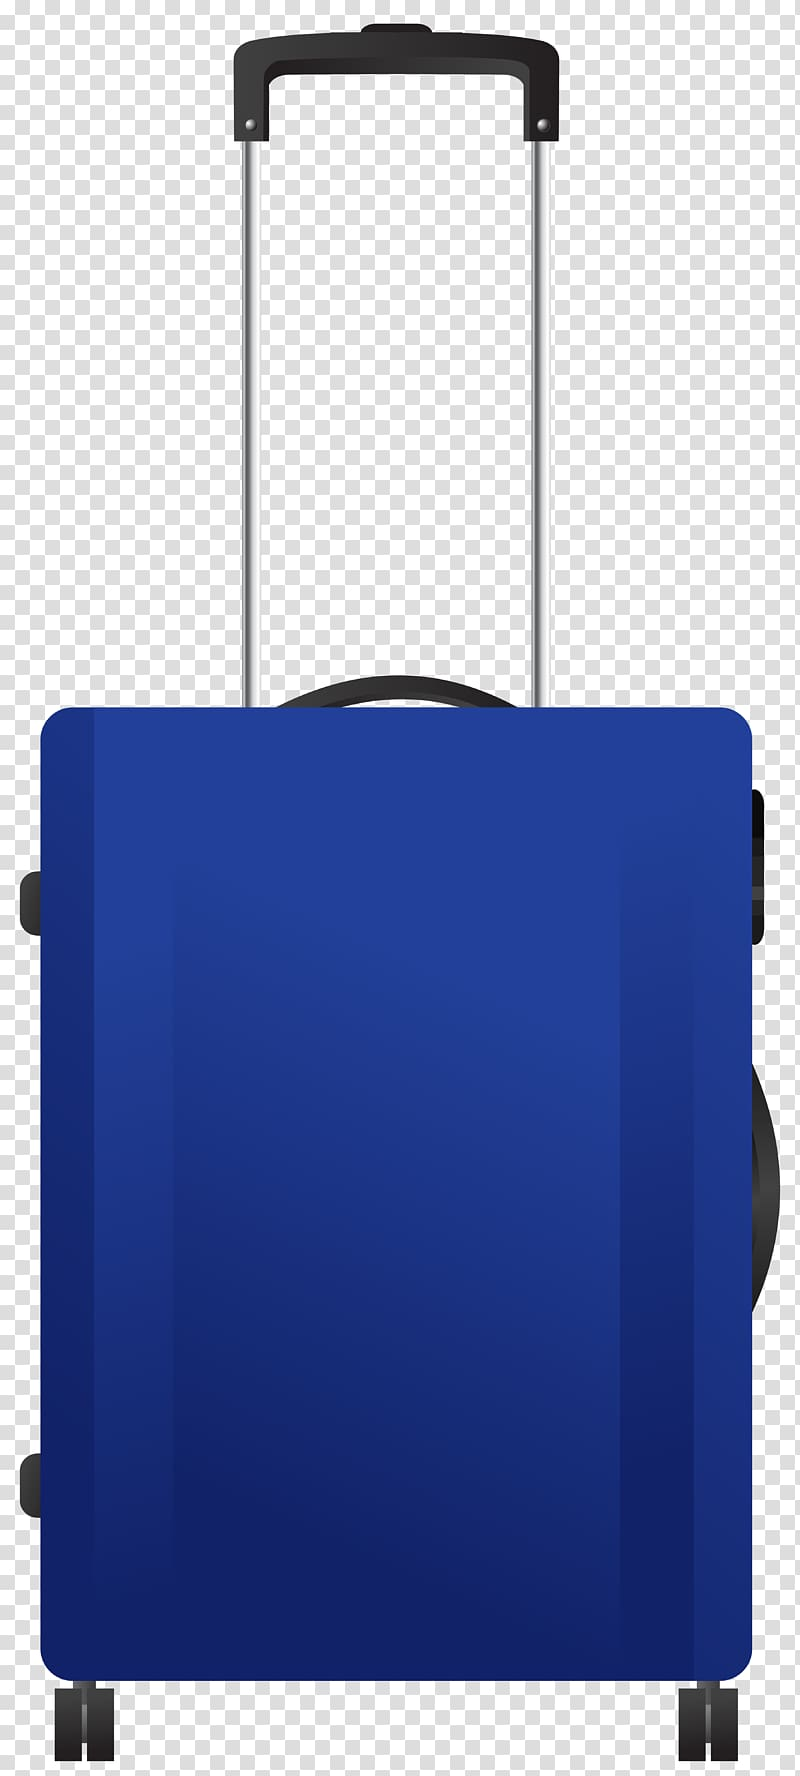 Rollercase clipart graphic Blue luggage, Blue Trolley Travel Bag transparent background ... graphic